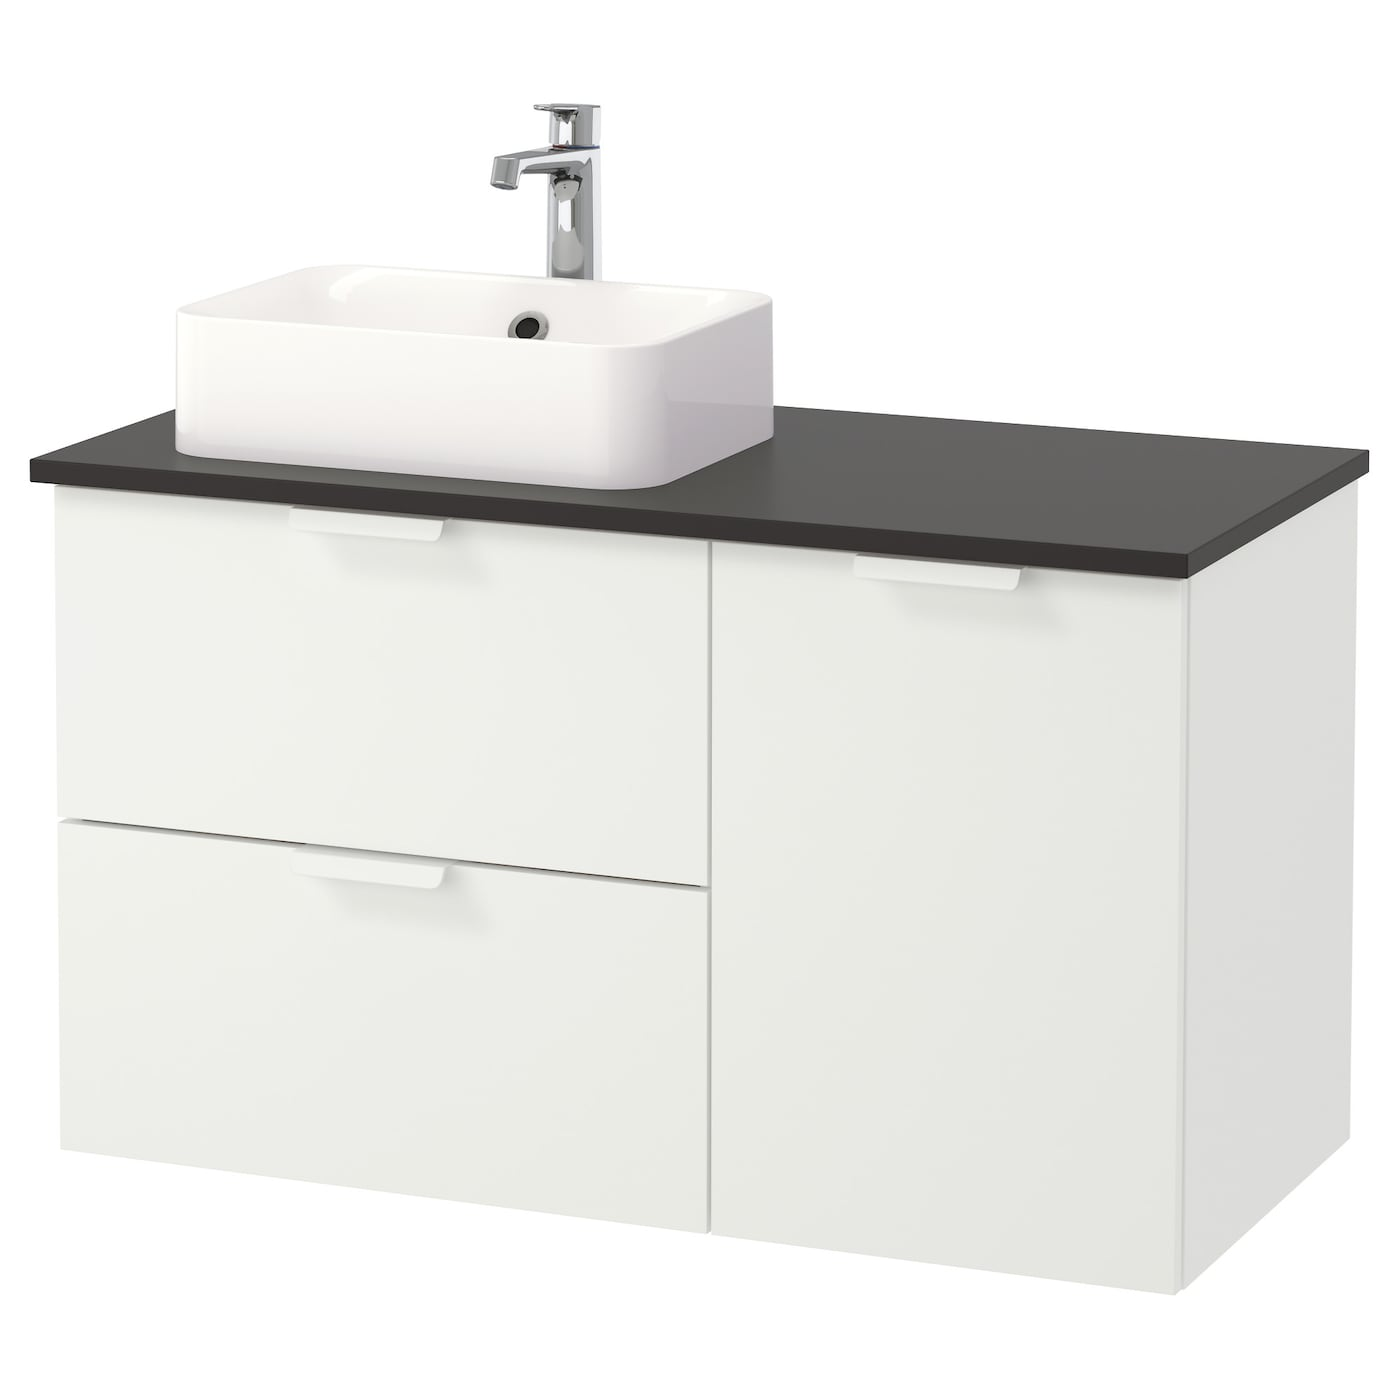 Wash basin without stand wash basin top counter